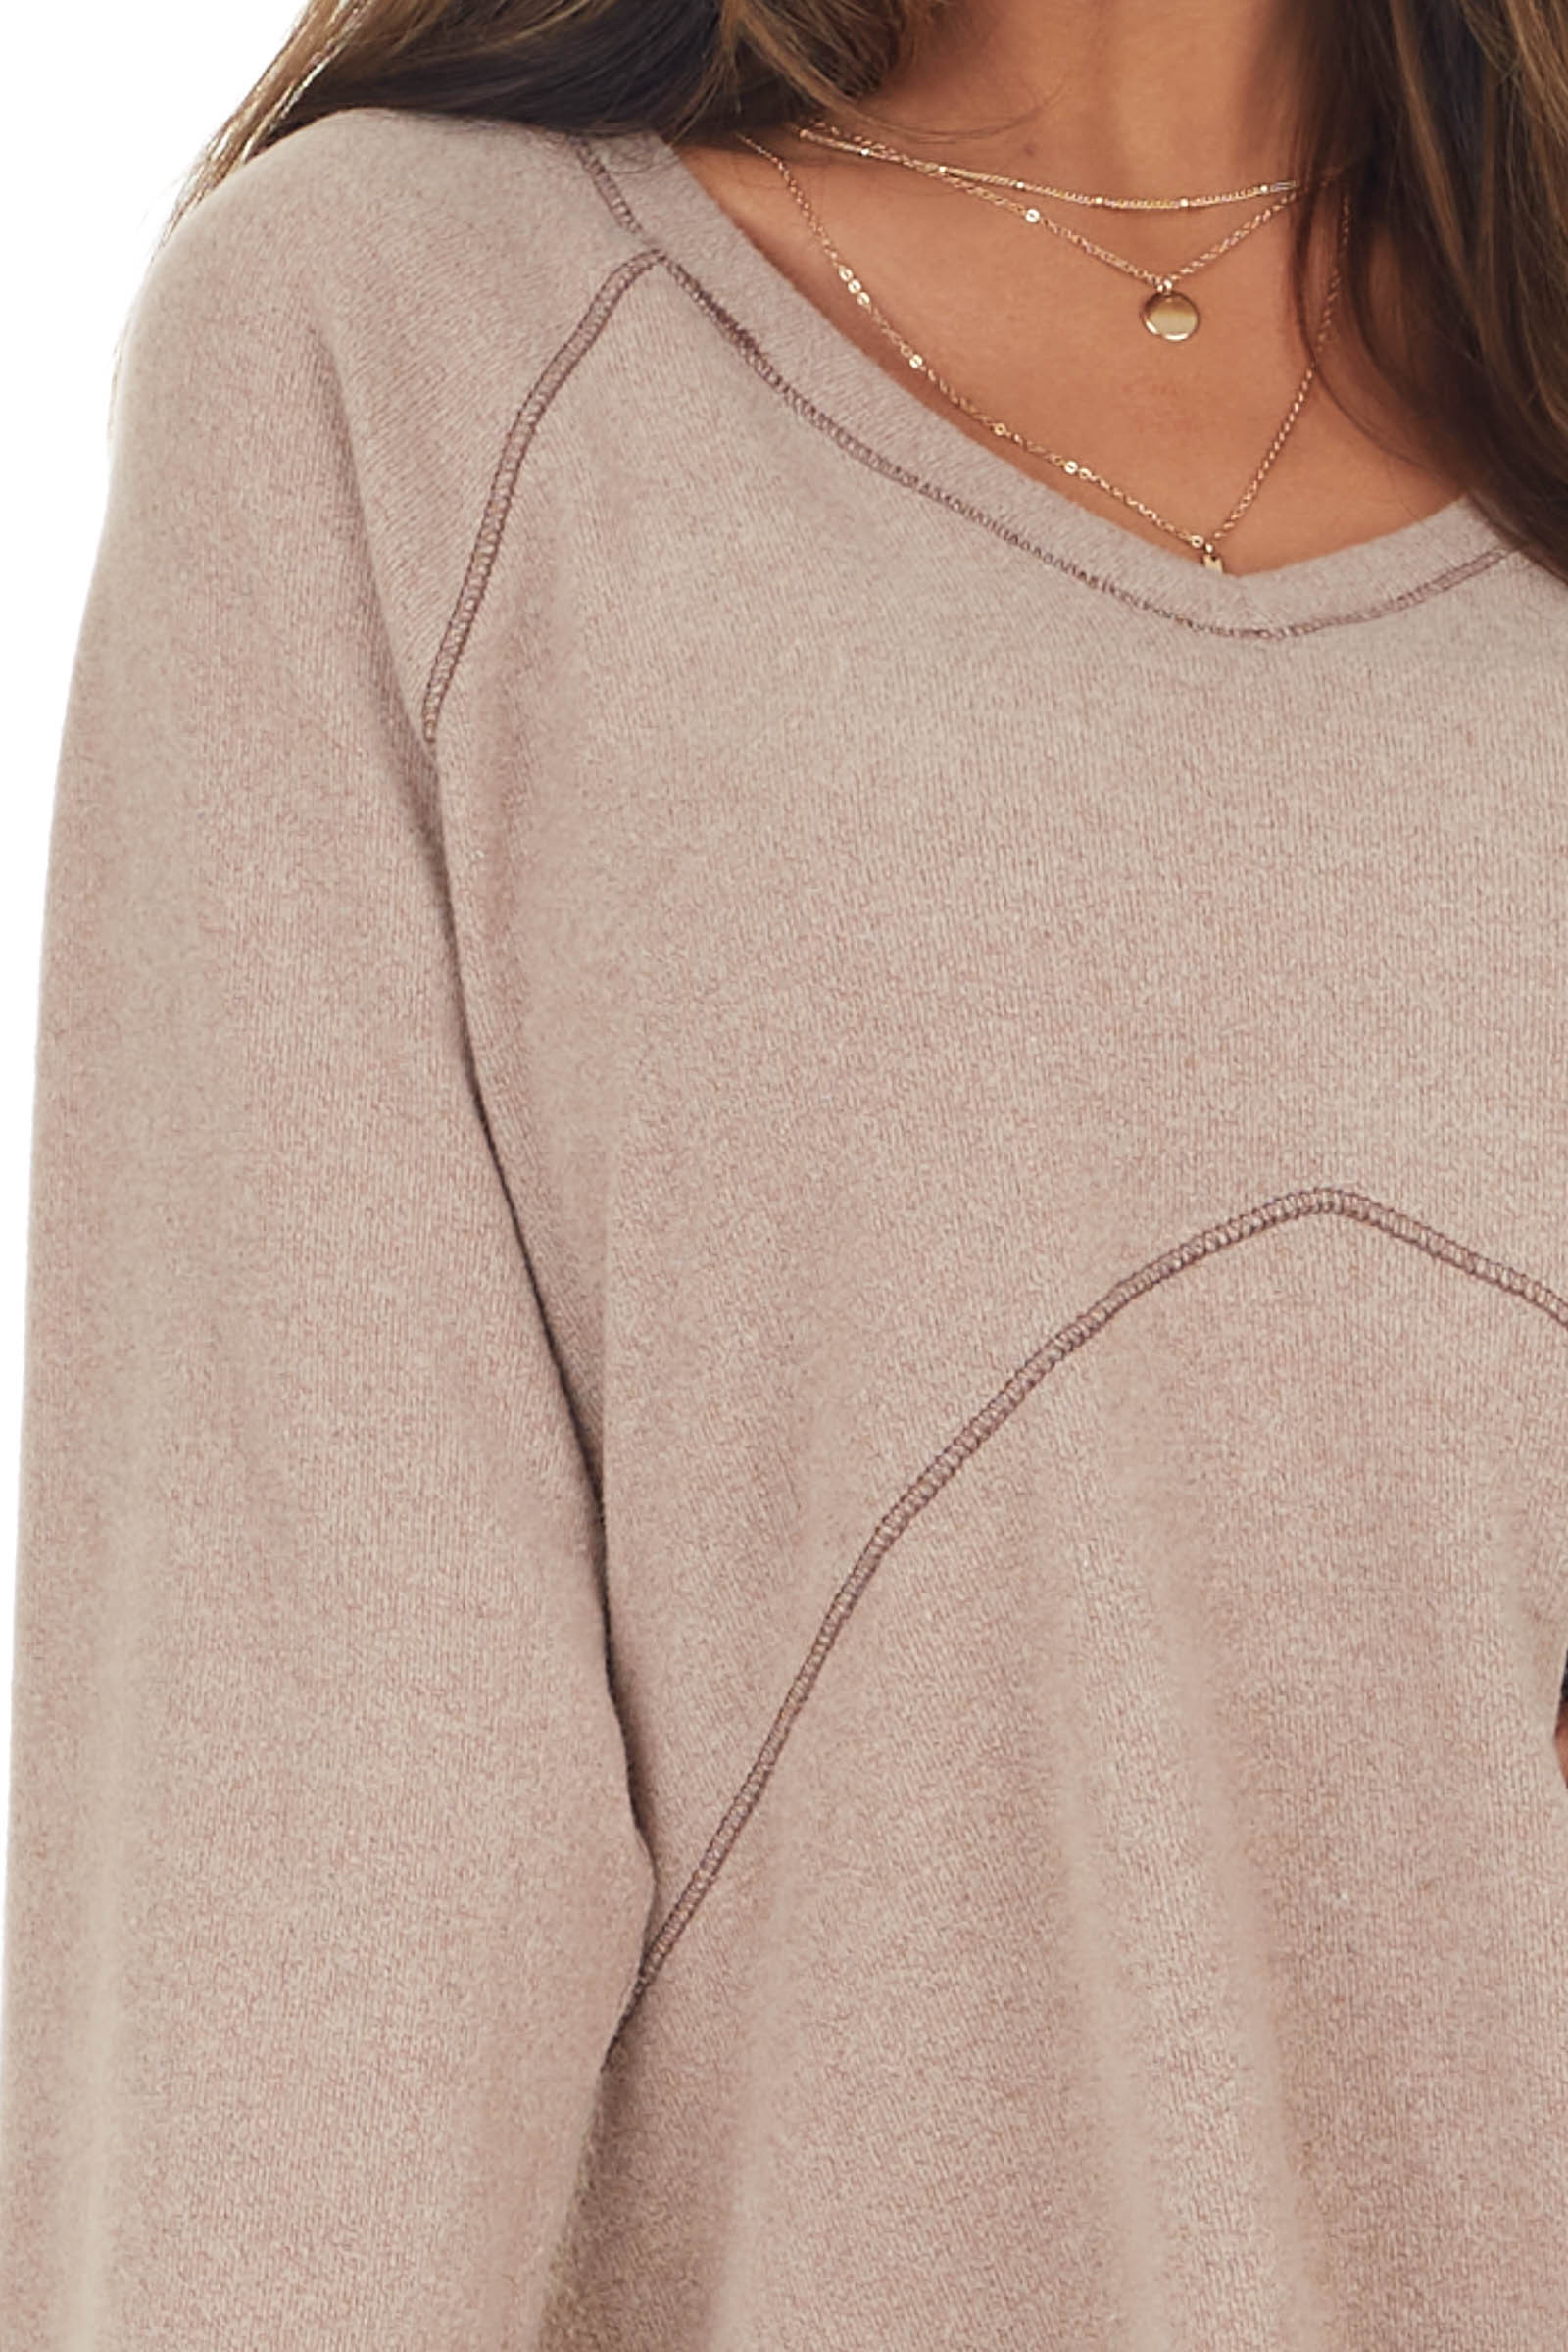 Latte Long Sleeve Soft Knit Top with Exposed Stitching